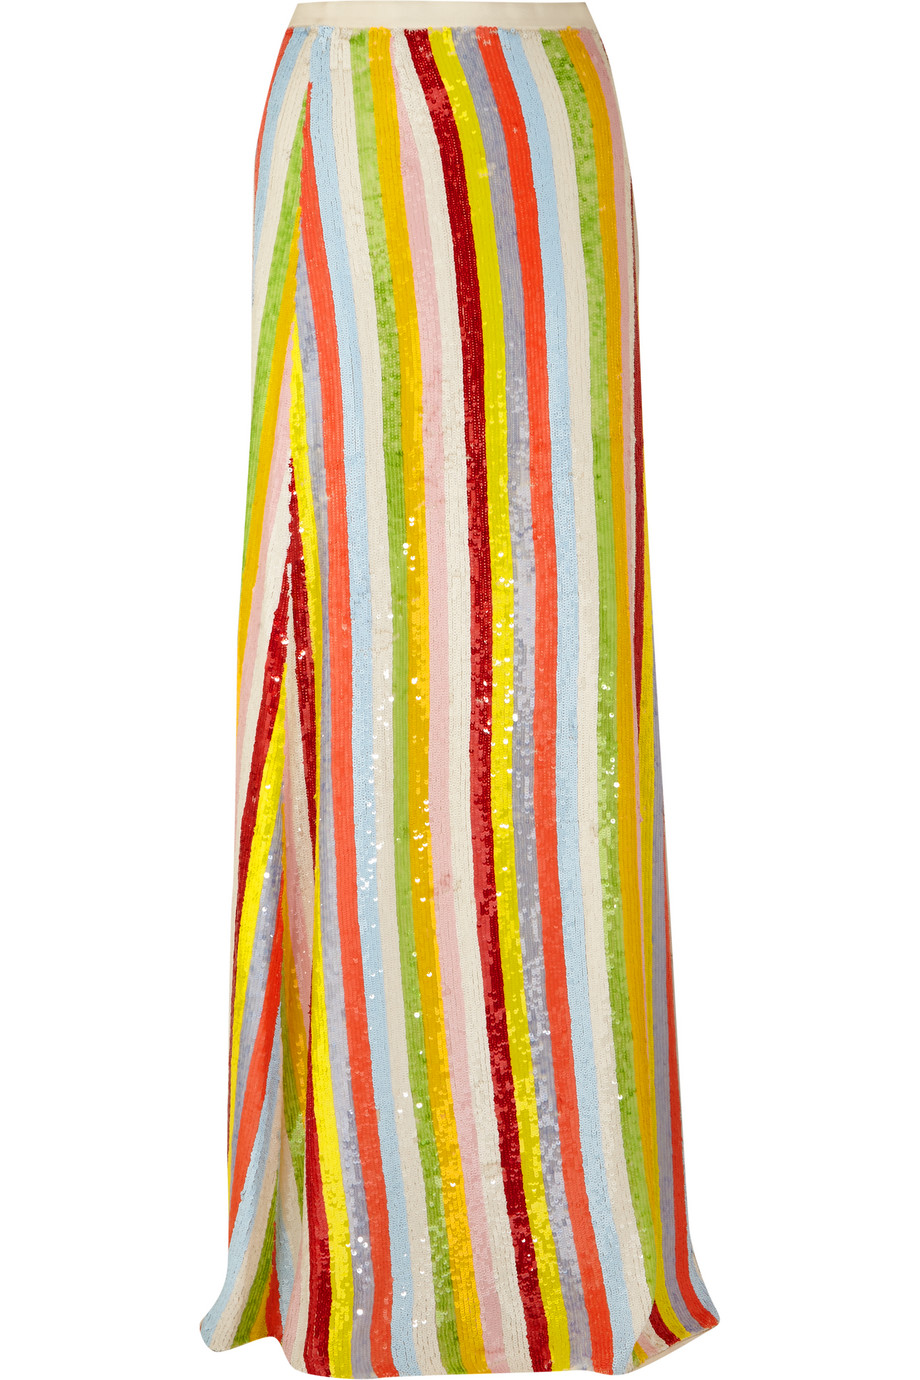 J.Crew Collection Striped Sequined Silk-Georgette Maxi Skirt, Size: 2